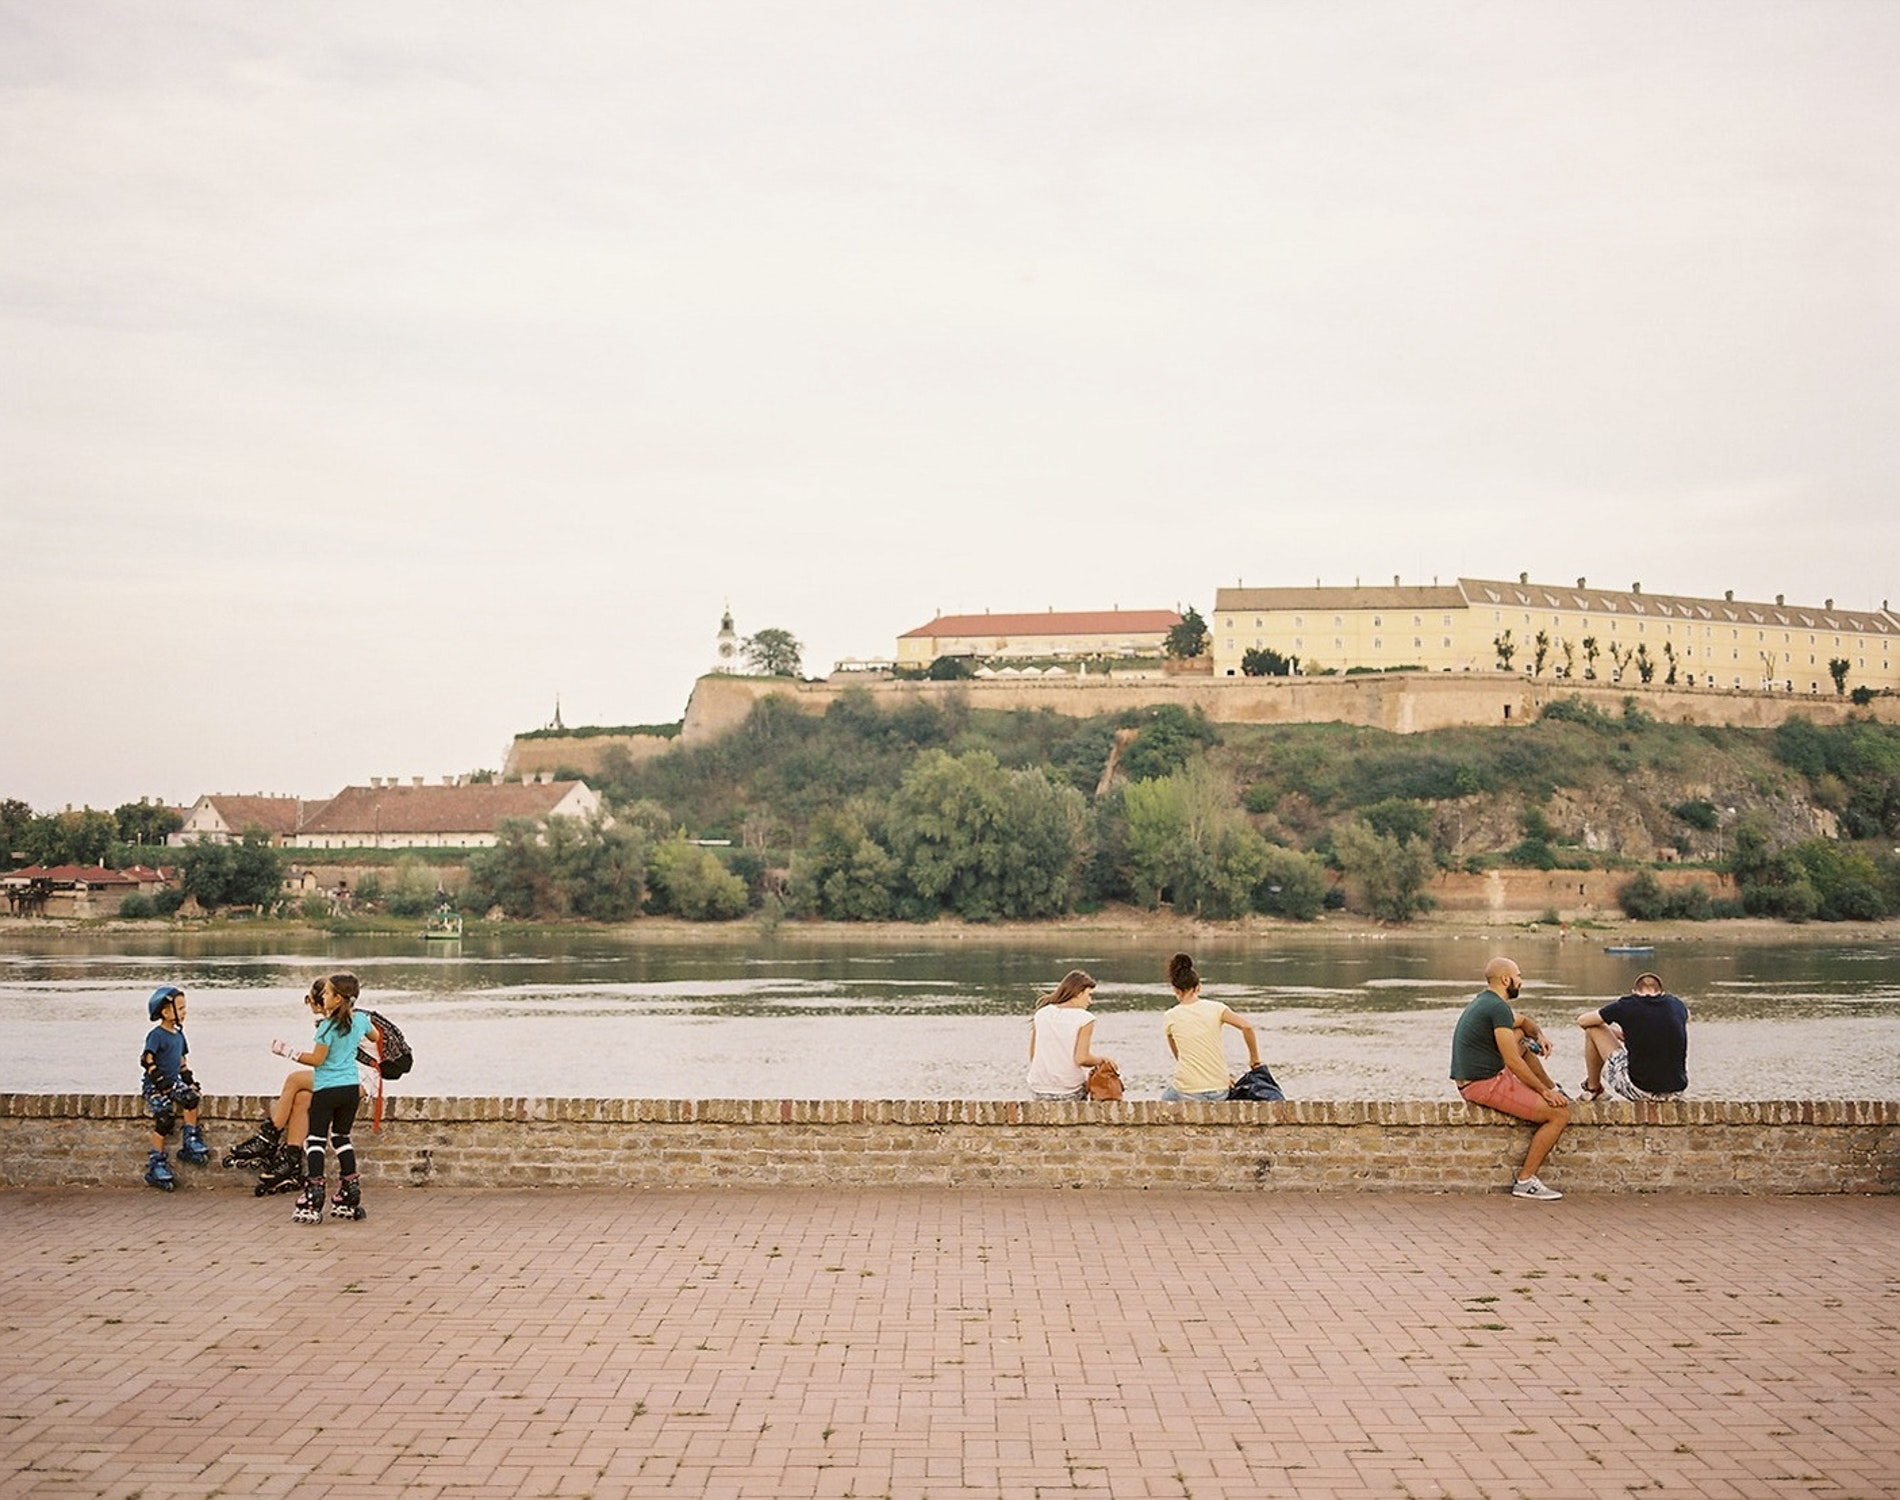 The view along the Danube River